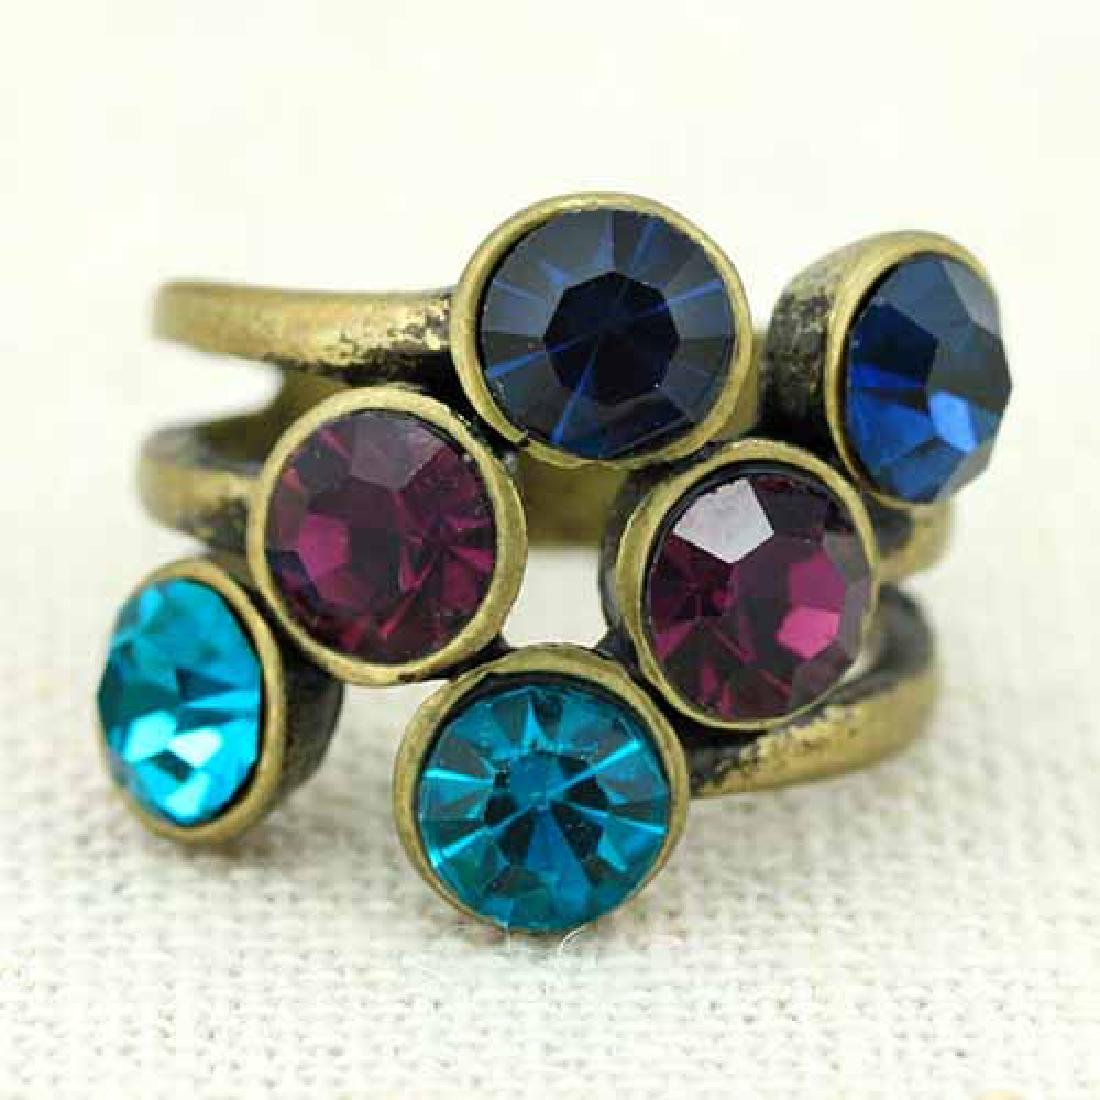 ANTIQUE STYLE GERMAN SILVER COLOR STONE RING